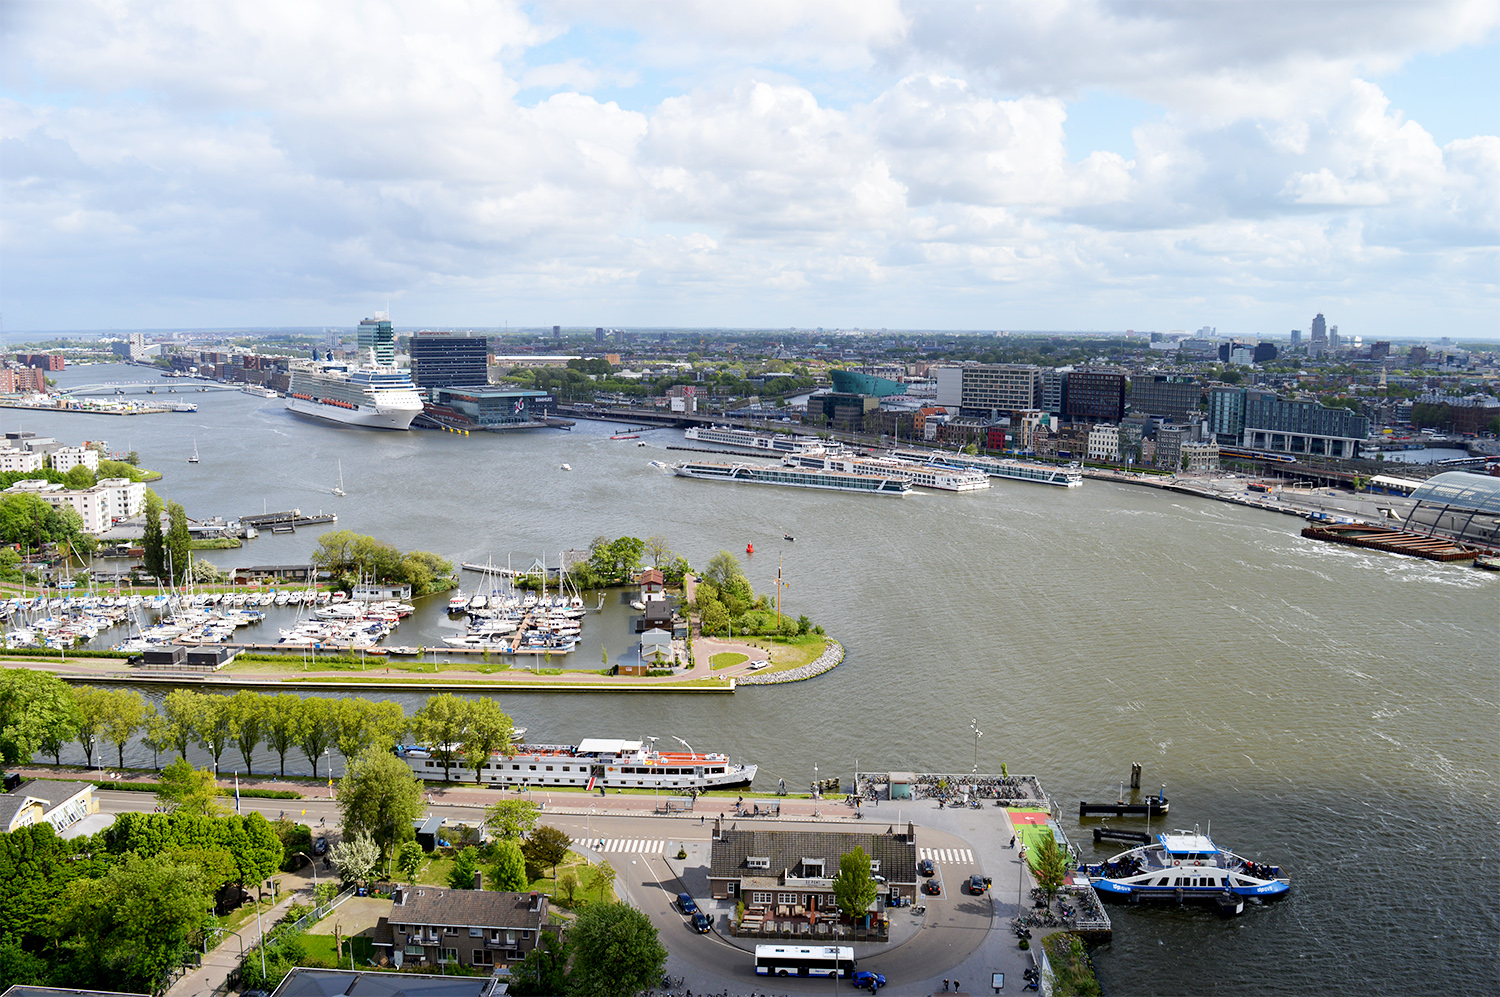 Best Amsterdam view A'DAM LOOKOUT Best Amsterdam view A'DAM LOOKOUT The Best Amsterdam view A'DAM LOOKOUT © CoupleofMen.com